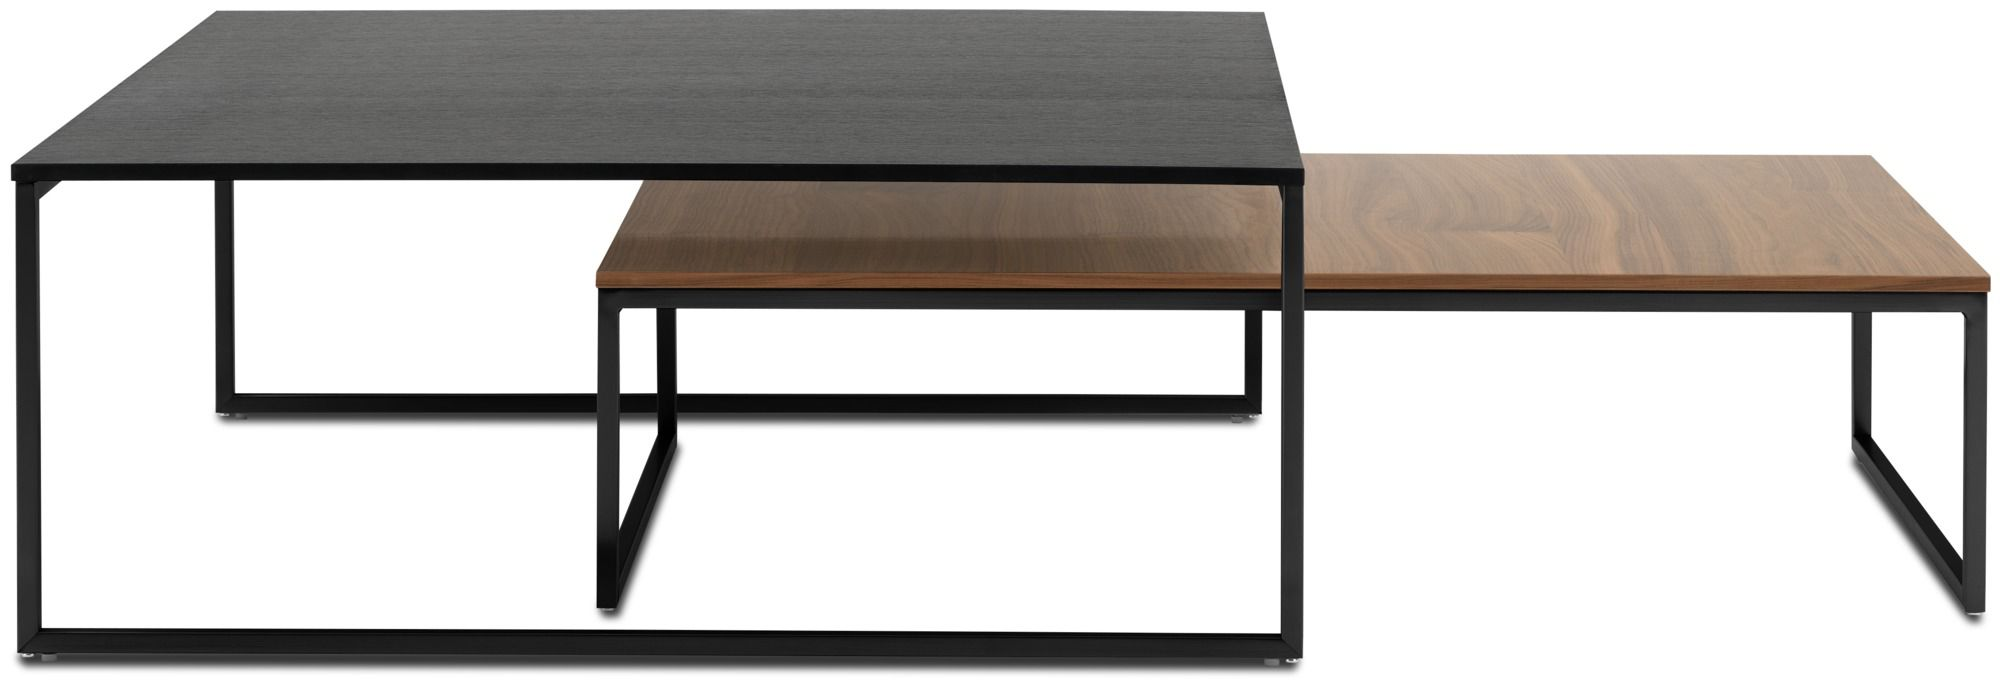 modern coffee tables contemporary coffee tables boconcept 130 barrow pinterest table. Black Bedroom Furniture Sets. Home Design Ideas